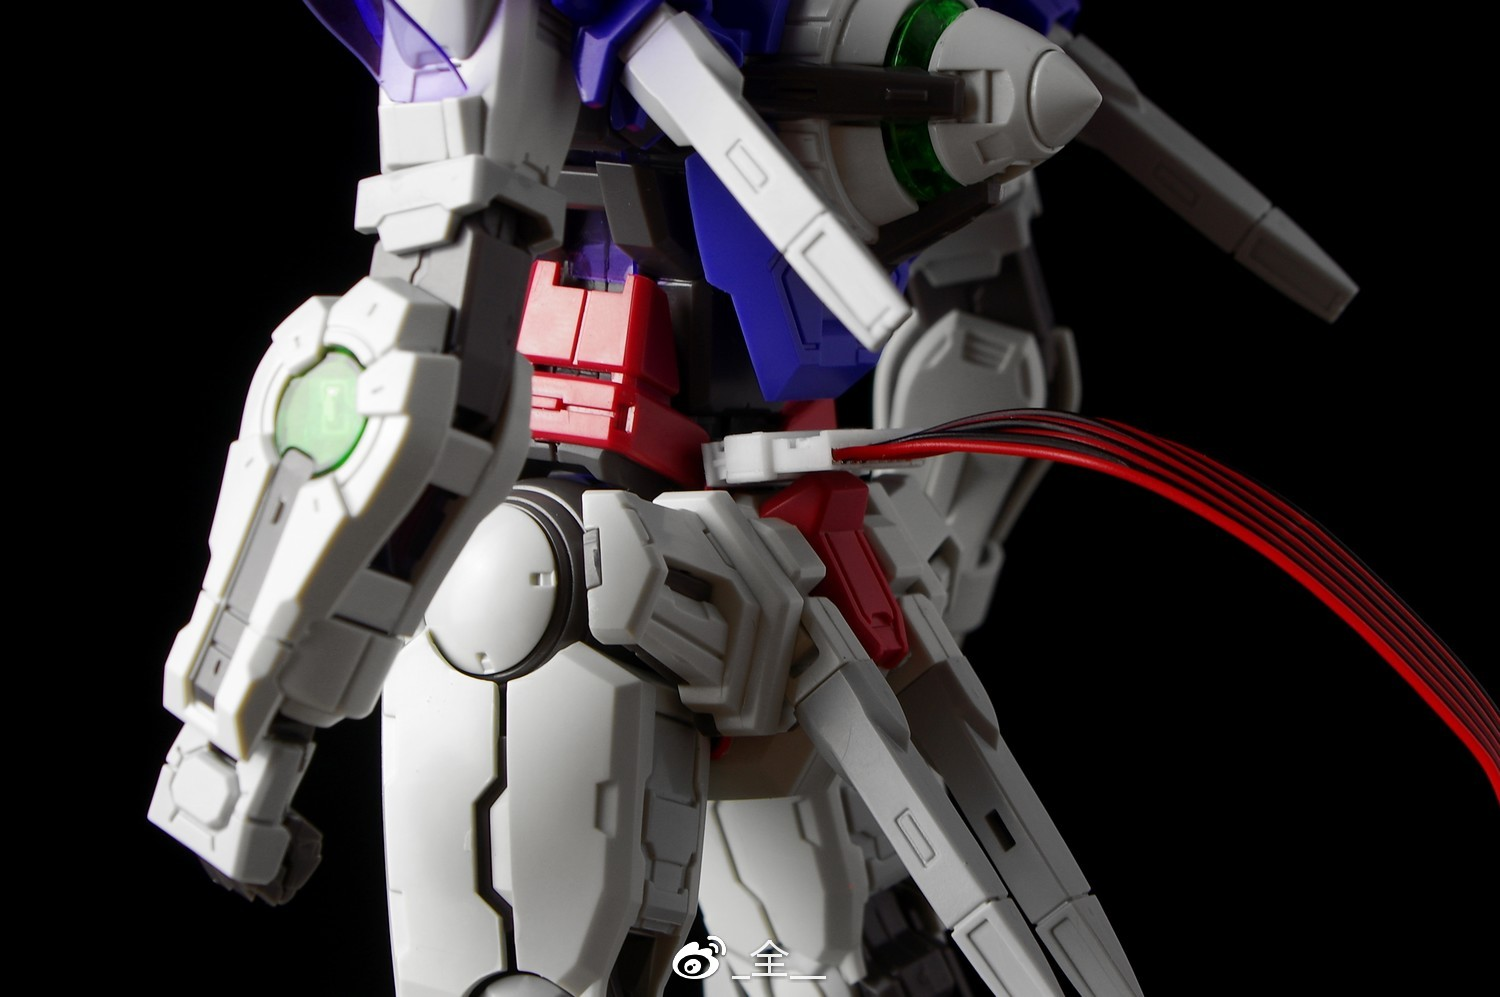 S269_mg_exia_led_hobby_star_inask_049.jpg